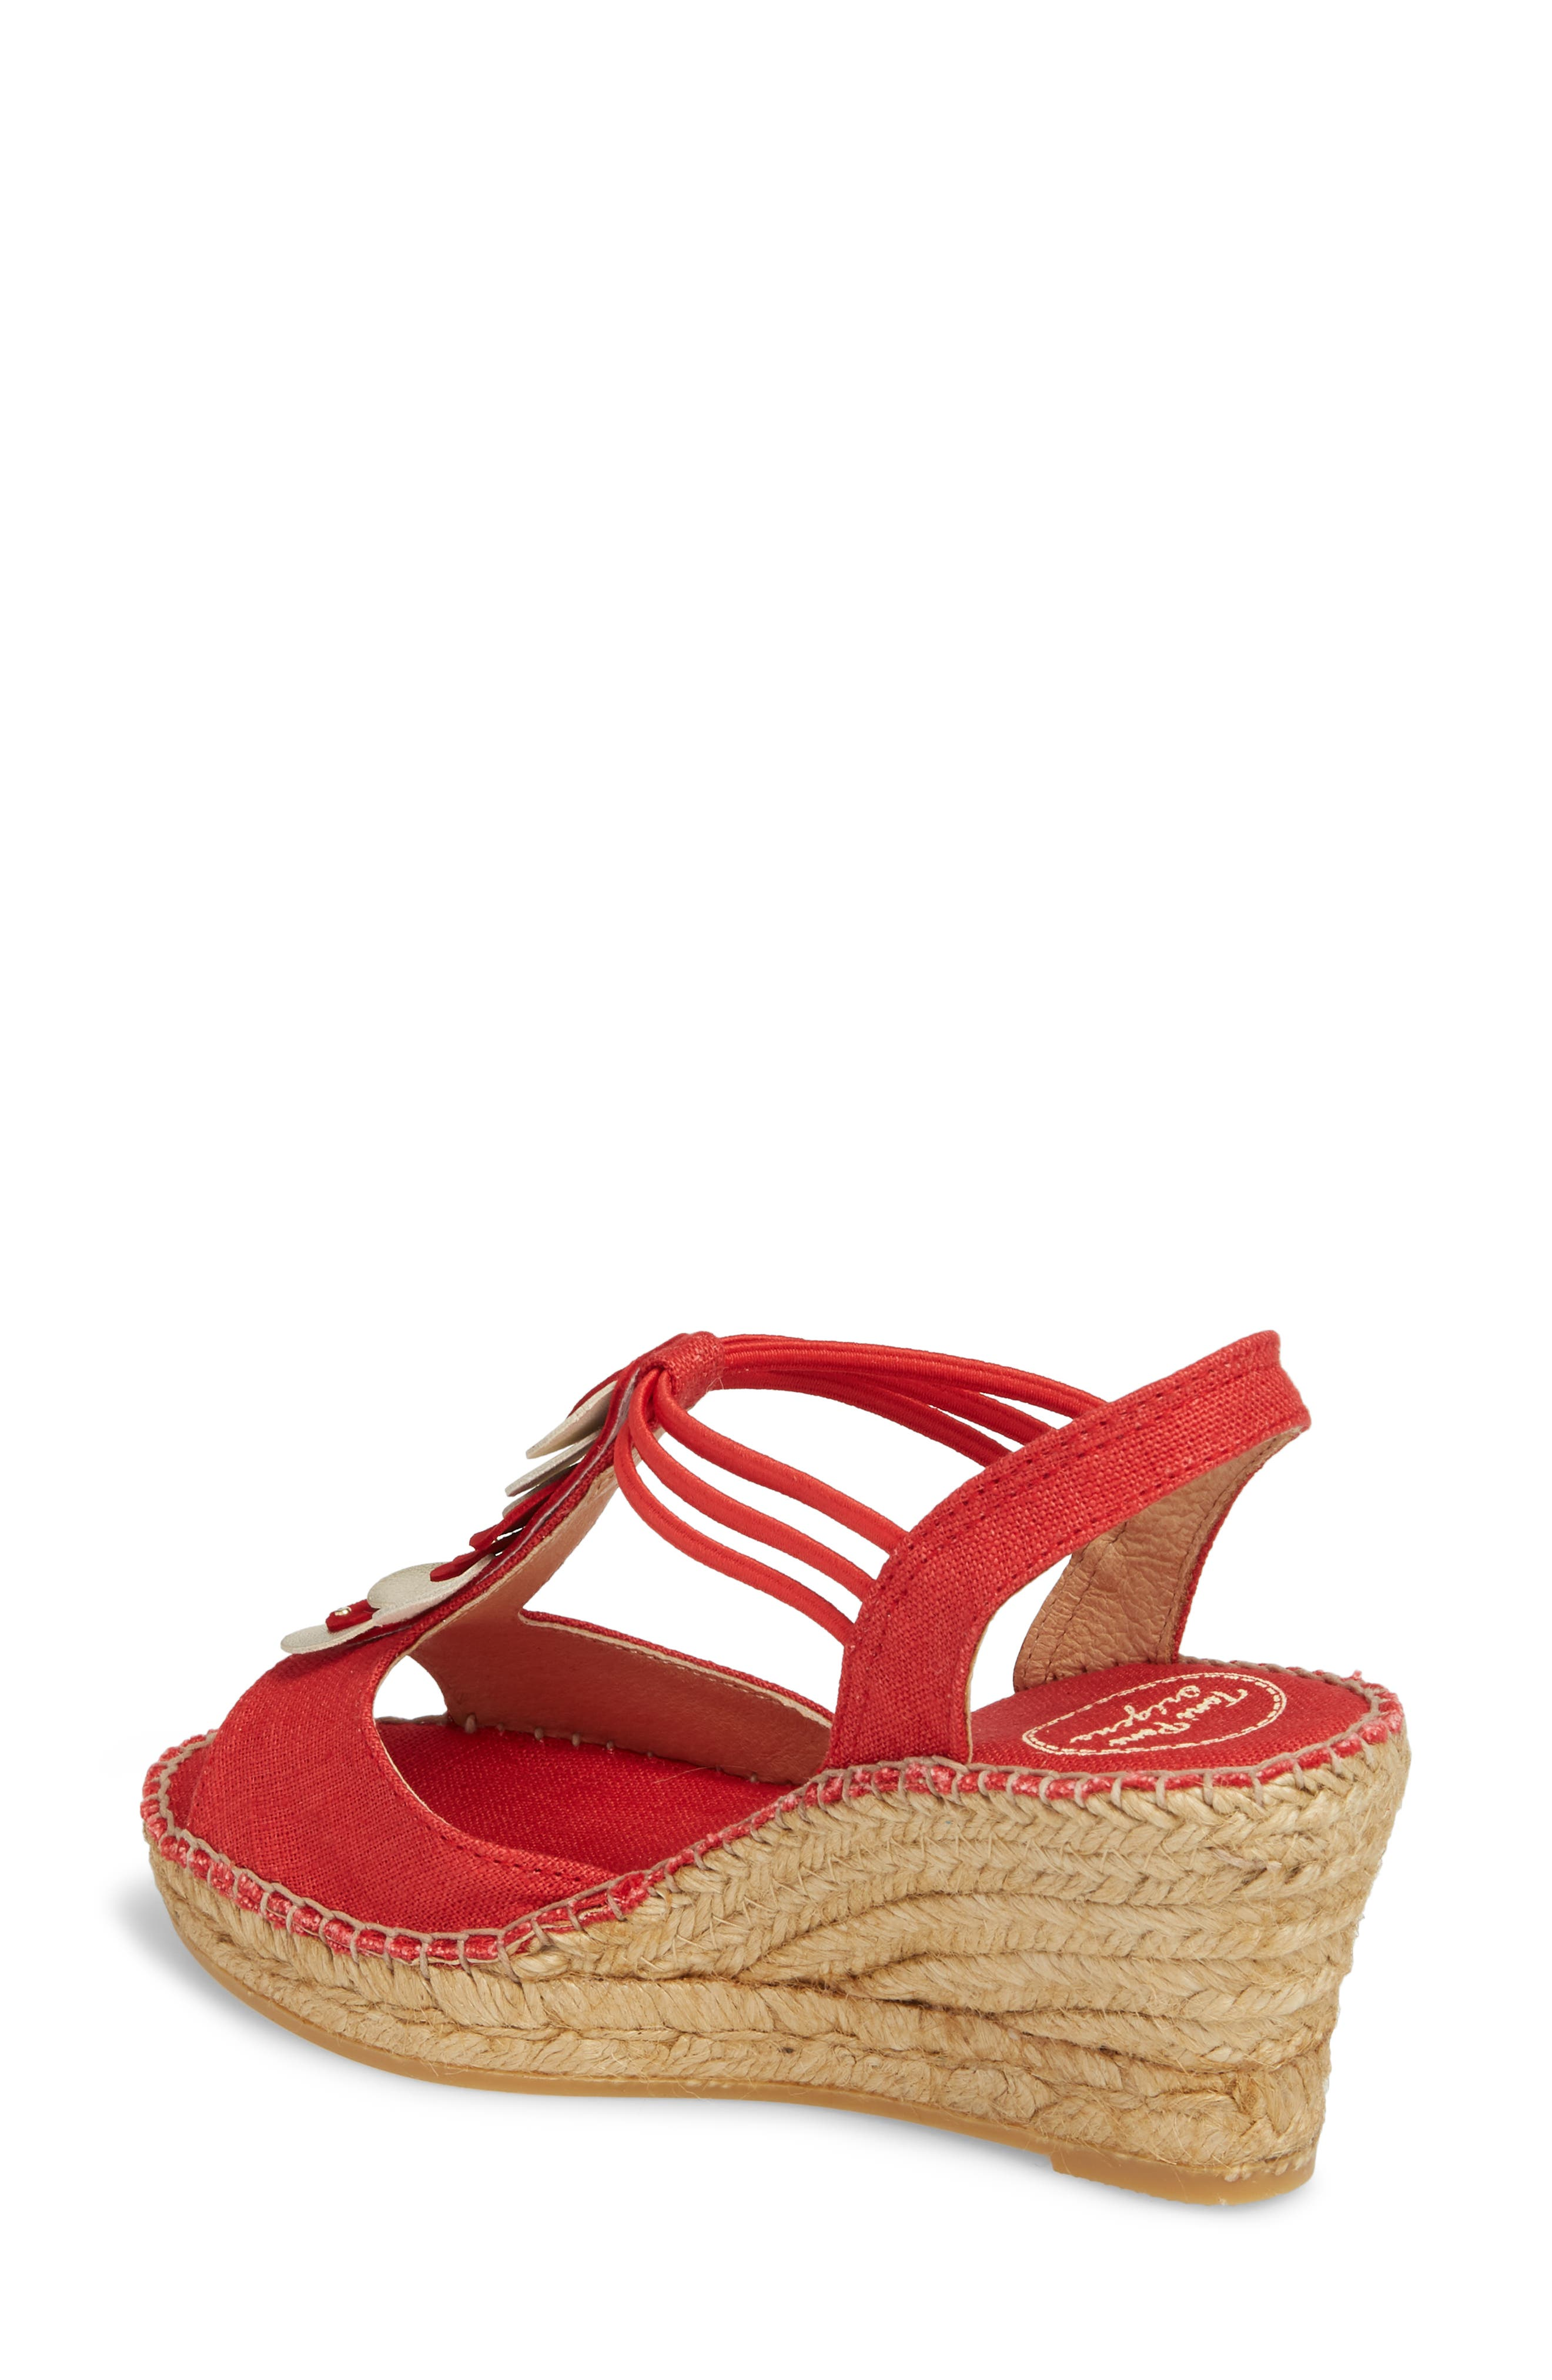 Sitges Espadrille Sandal,                             Alternate thumbnail 2, color,                             Red Fabric